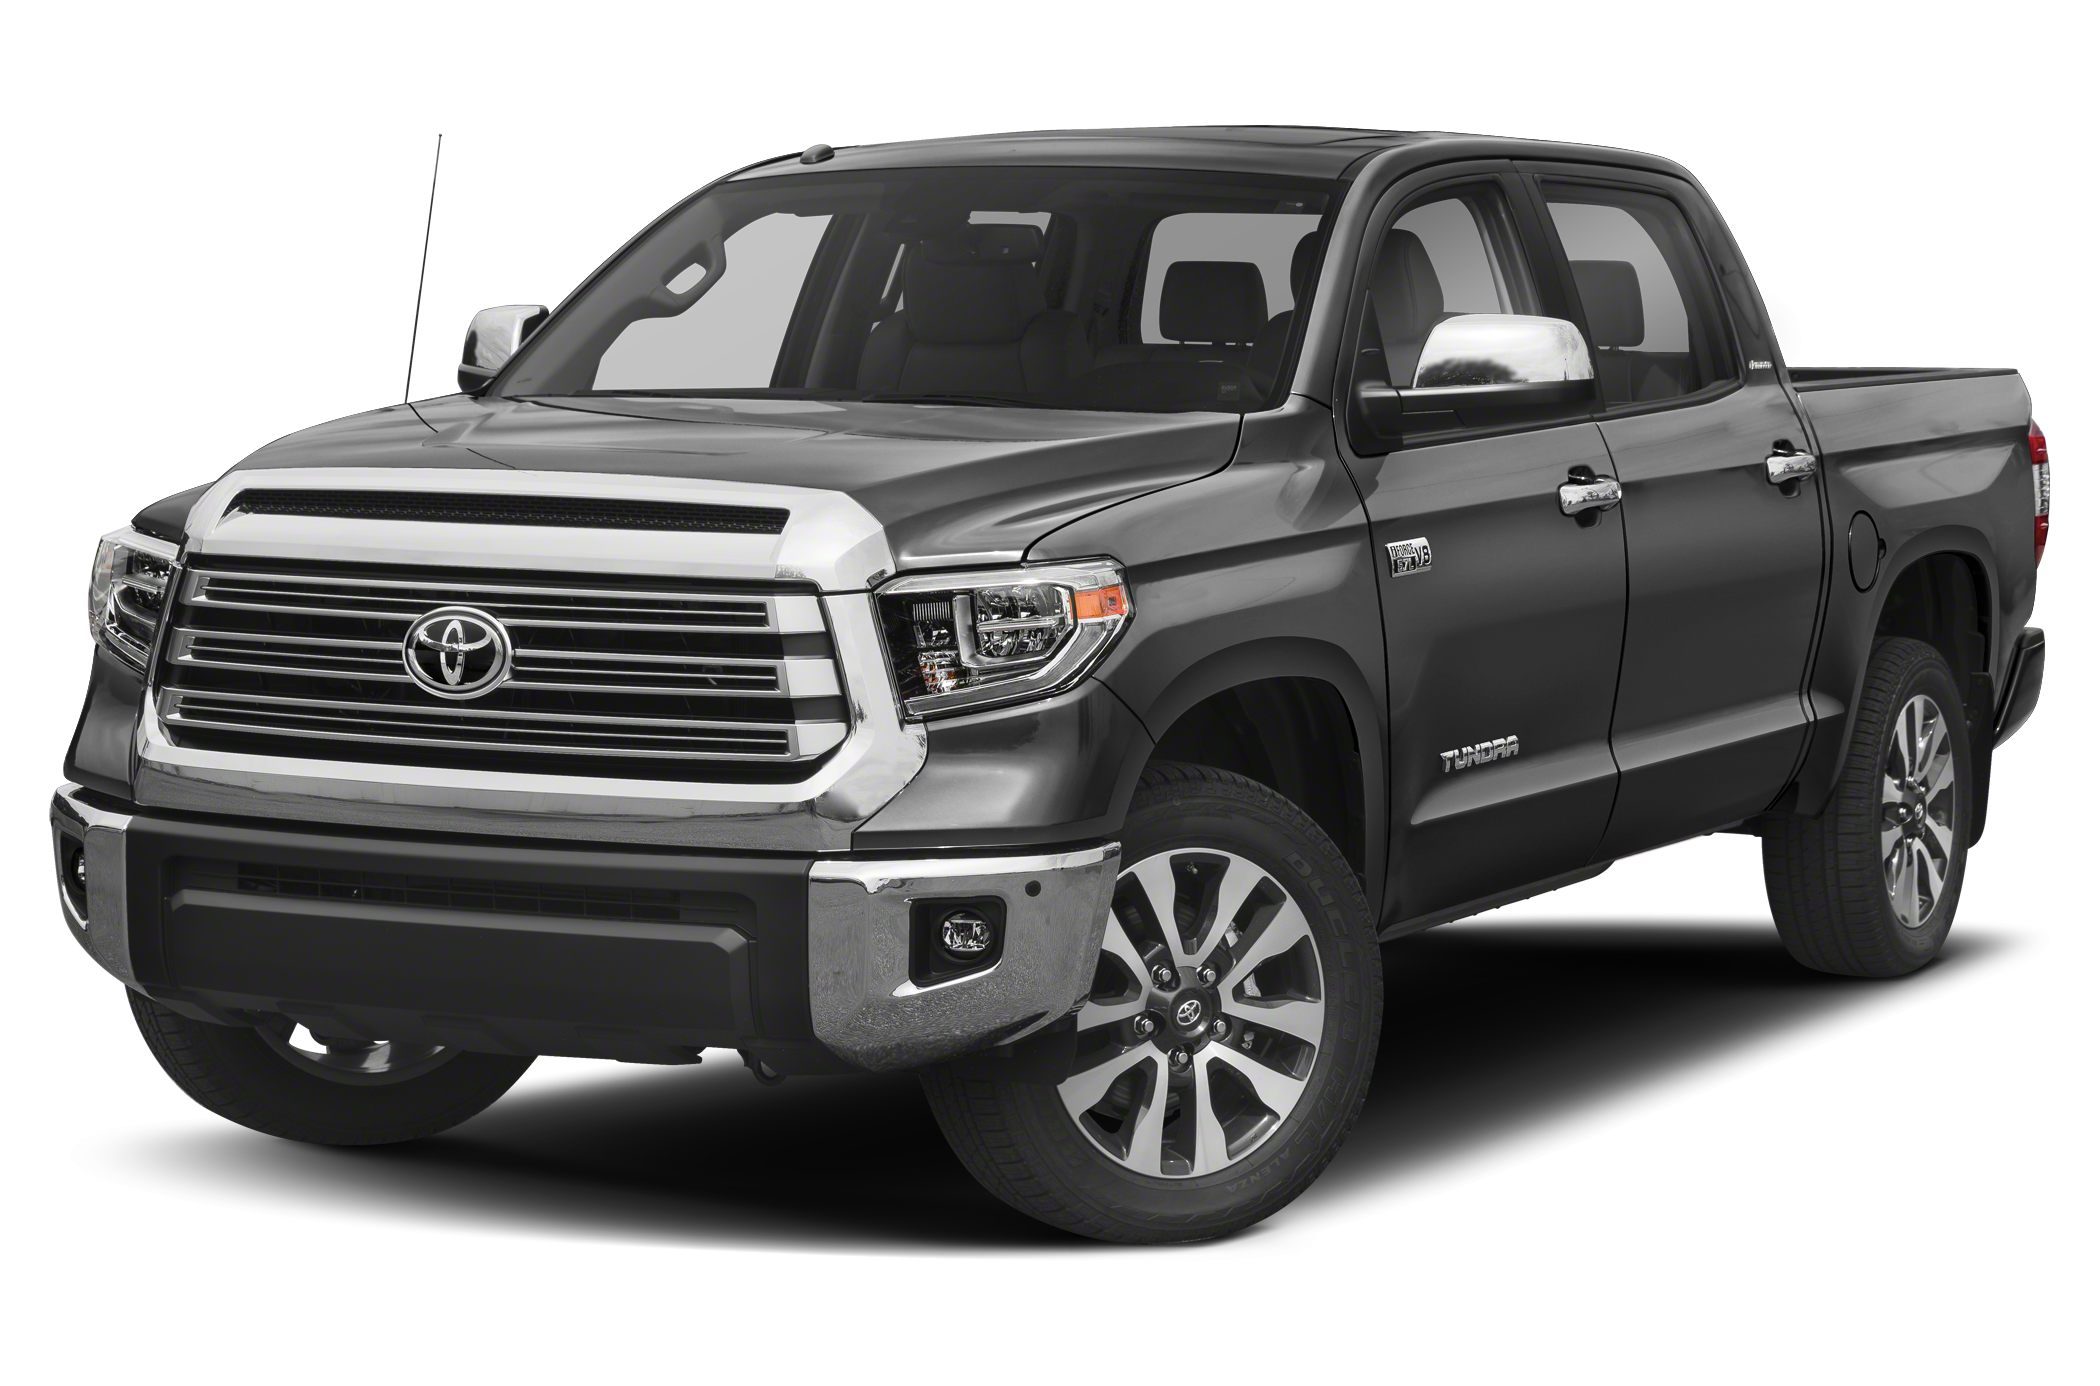 2018 Toyota Tundra SR5 Priced to sell 3151 below MSRP Backup Camera Bluetooth This 2018 To